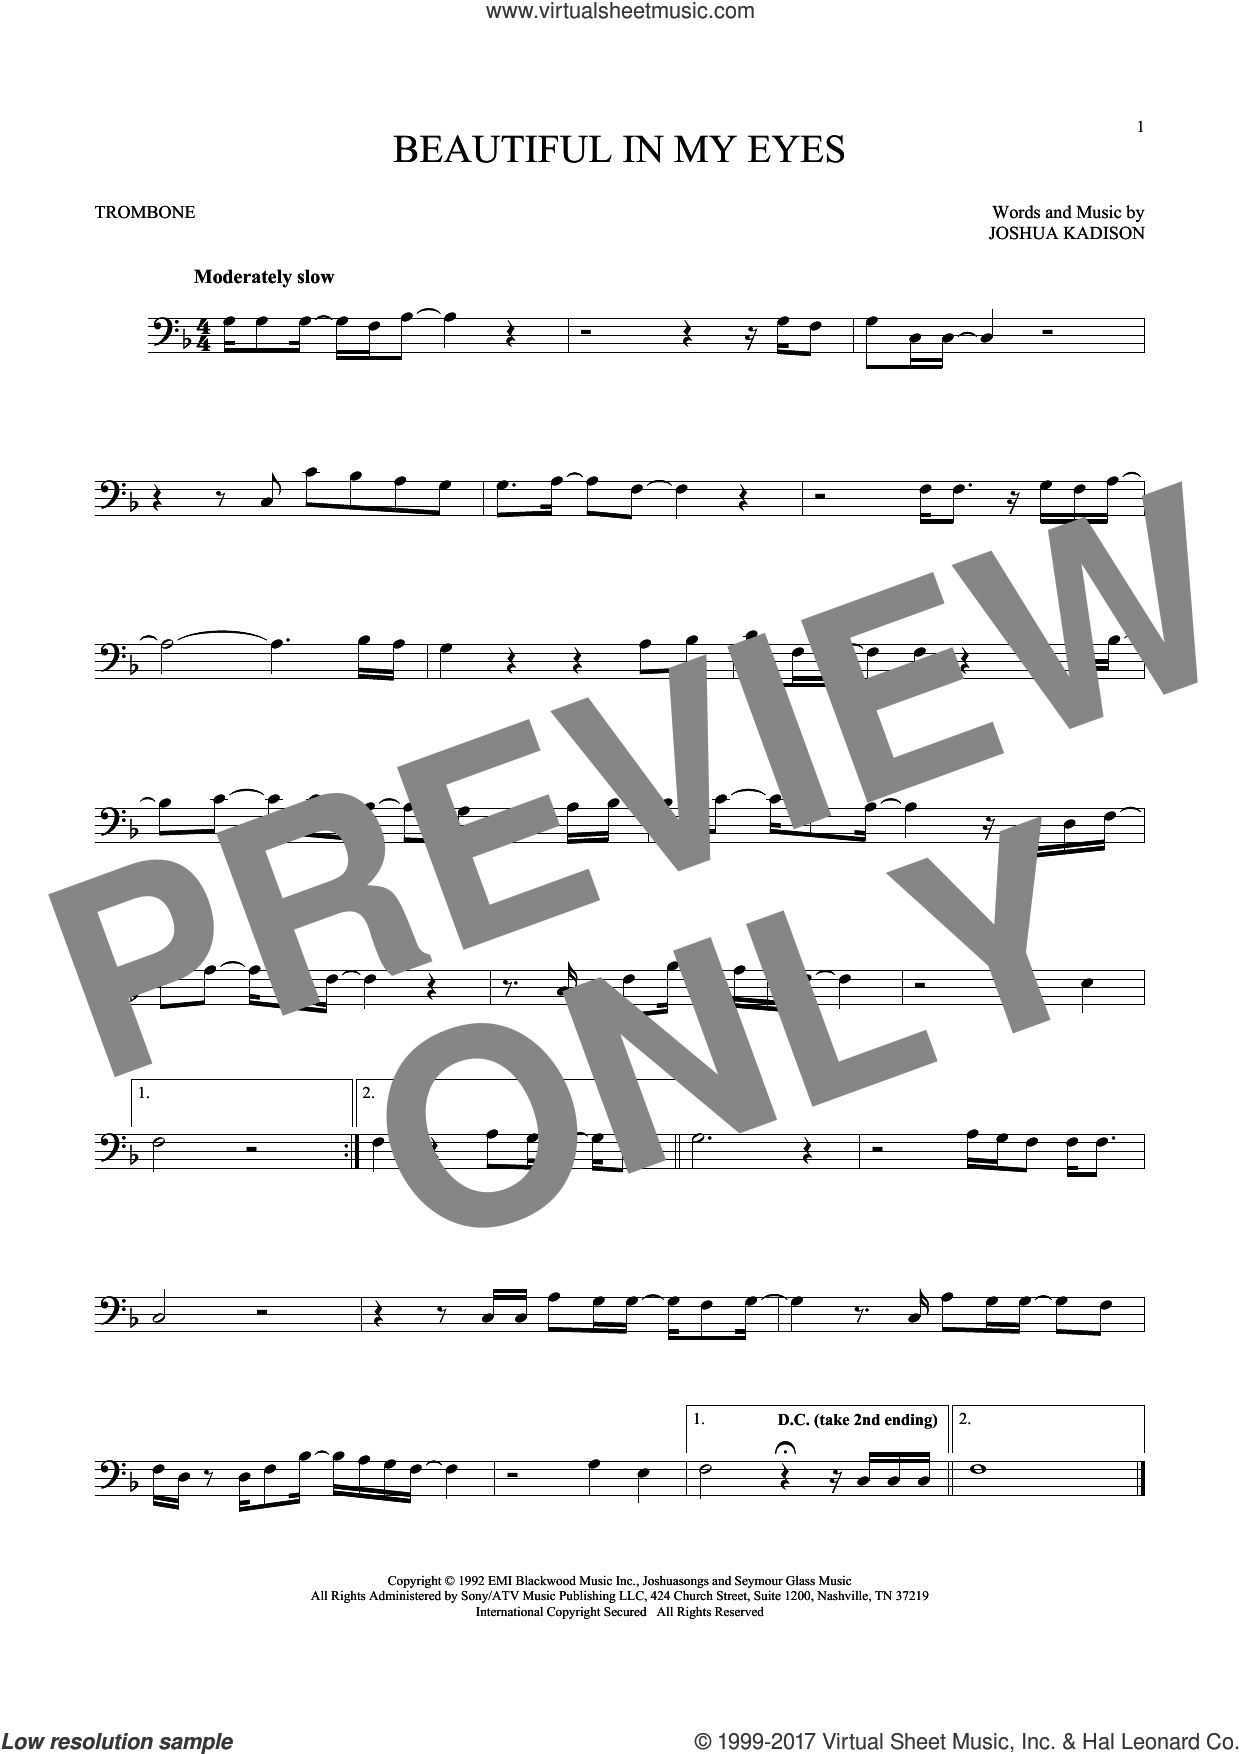 Beautiful In My Eyes sheet music for trombone solo by Joshua Kadison, intermediate skill level